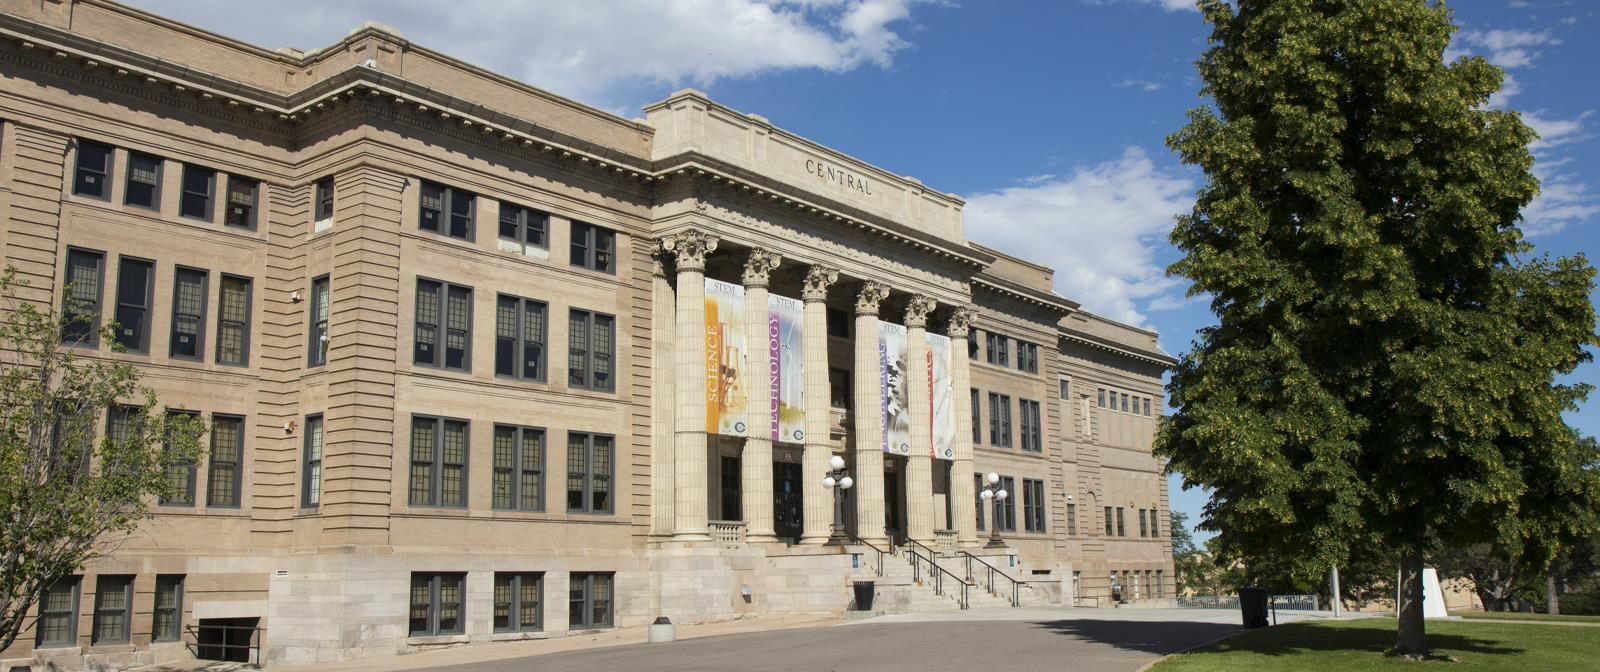 Front facade of Central High School in Pueblo, Colorado